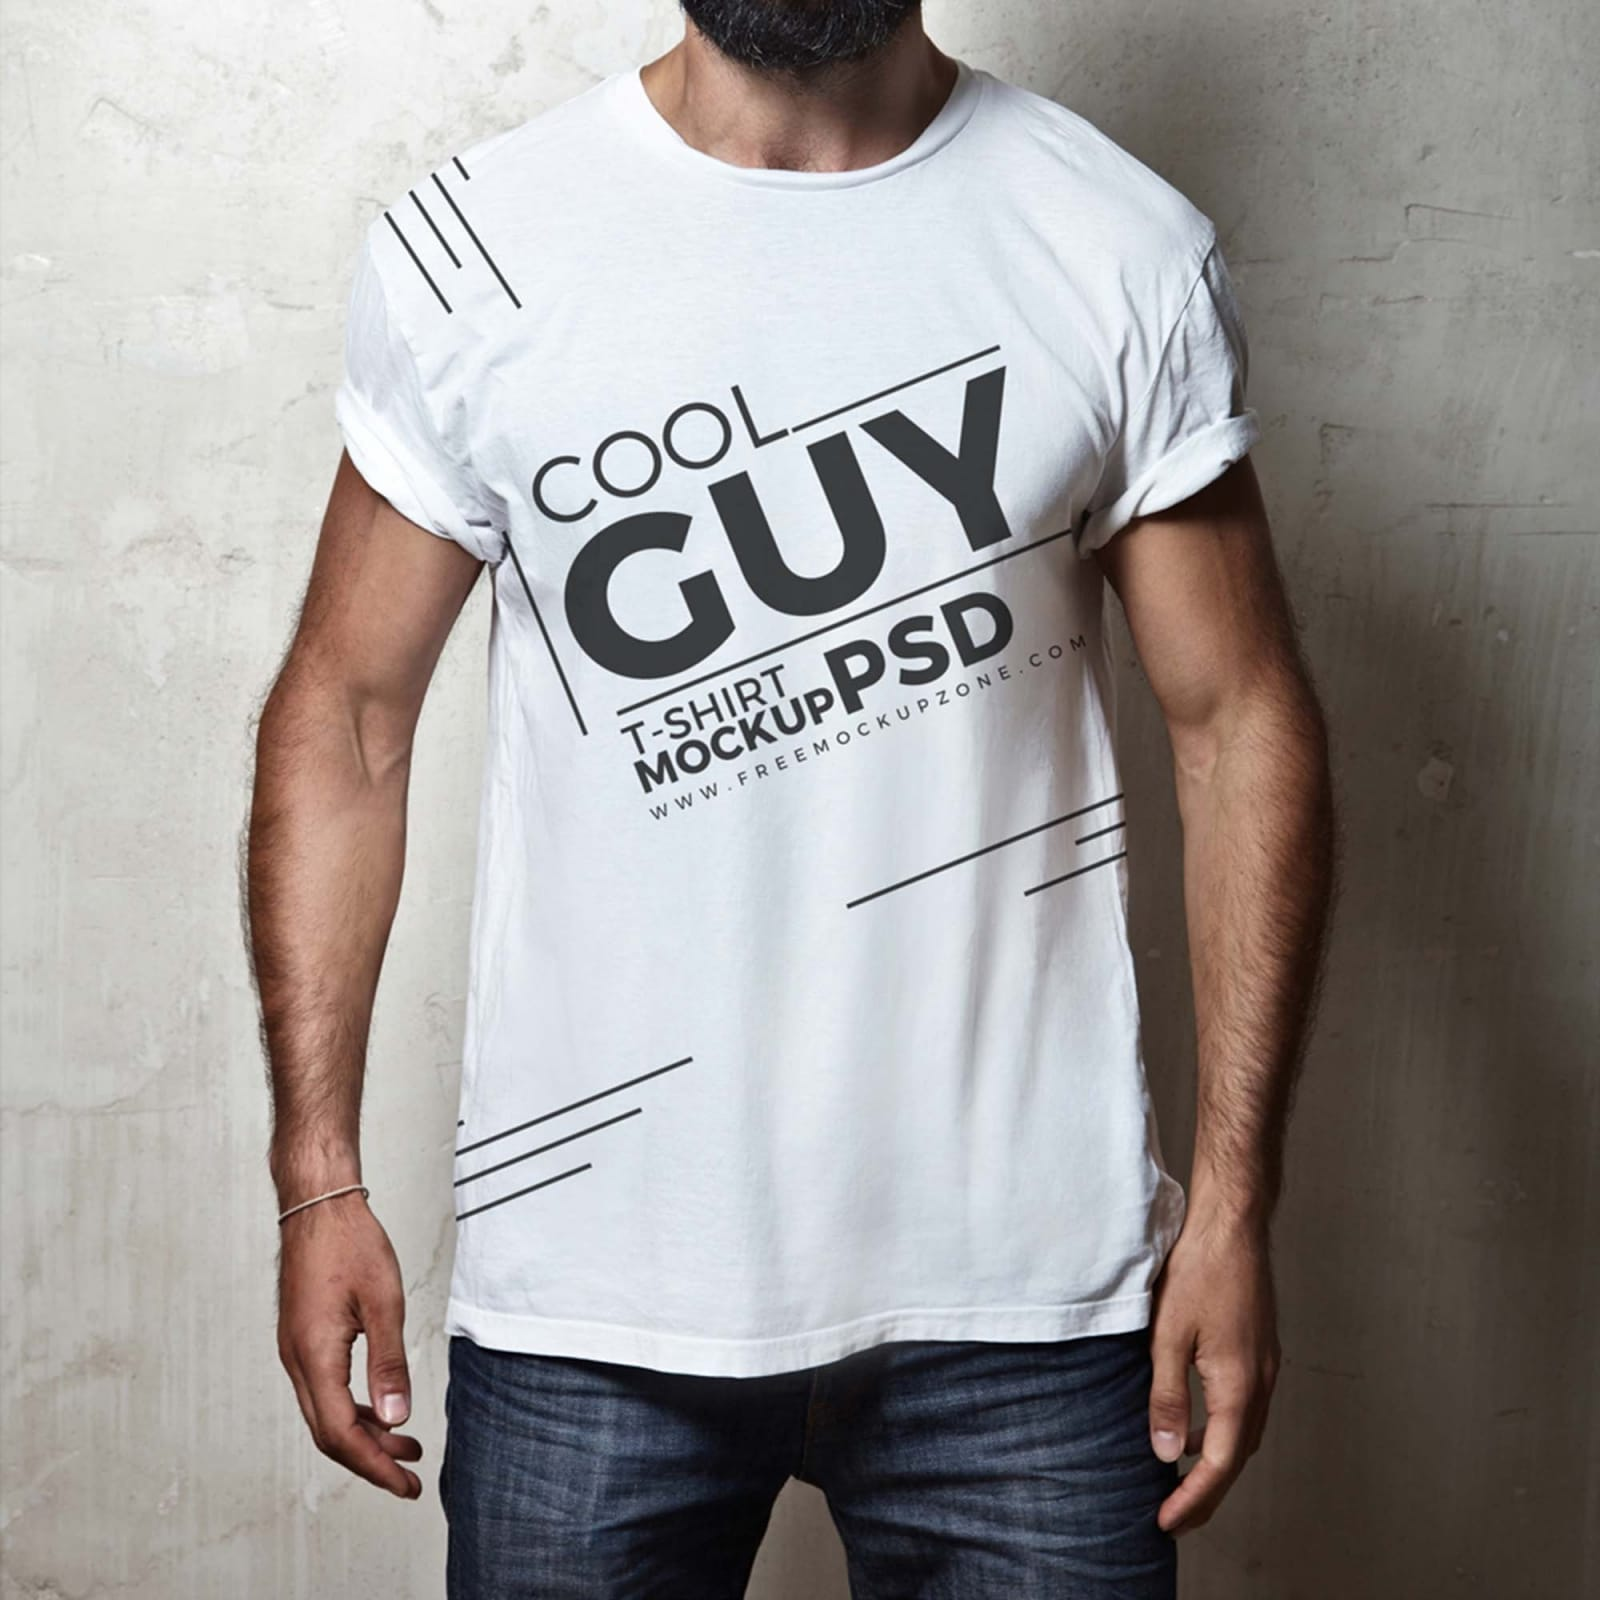 Male T-shirt Mockup Available in PSD Download For Free ...